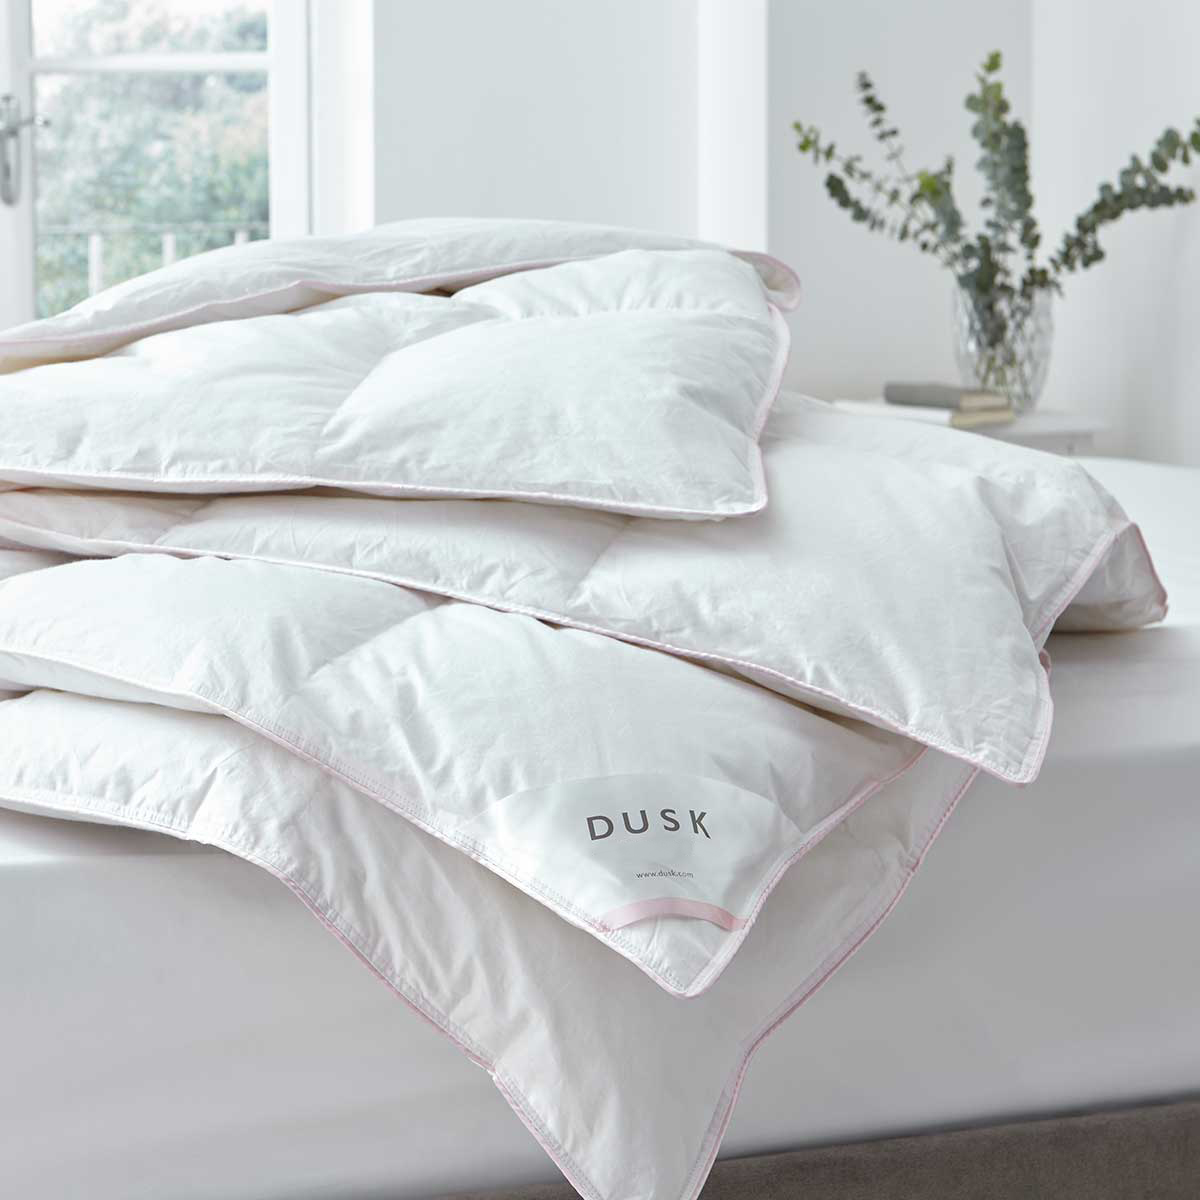 How To Choose The Right Duvet Tog For Each Season